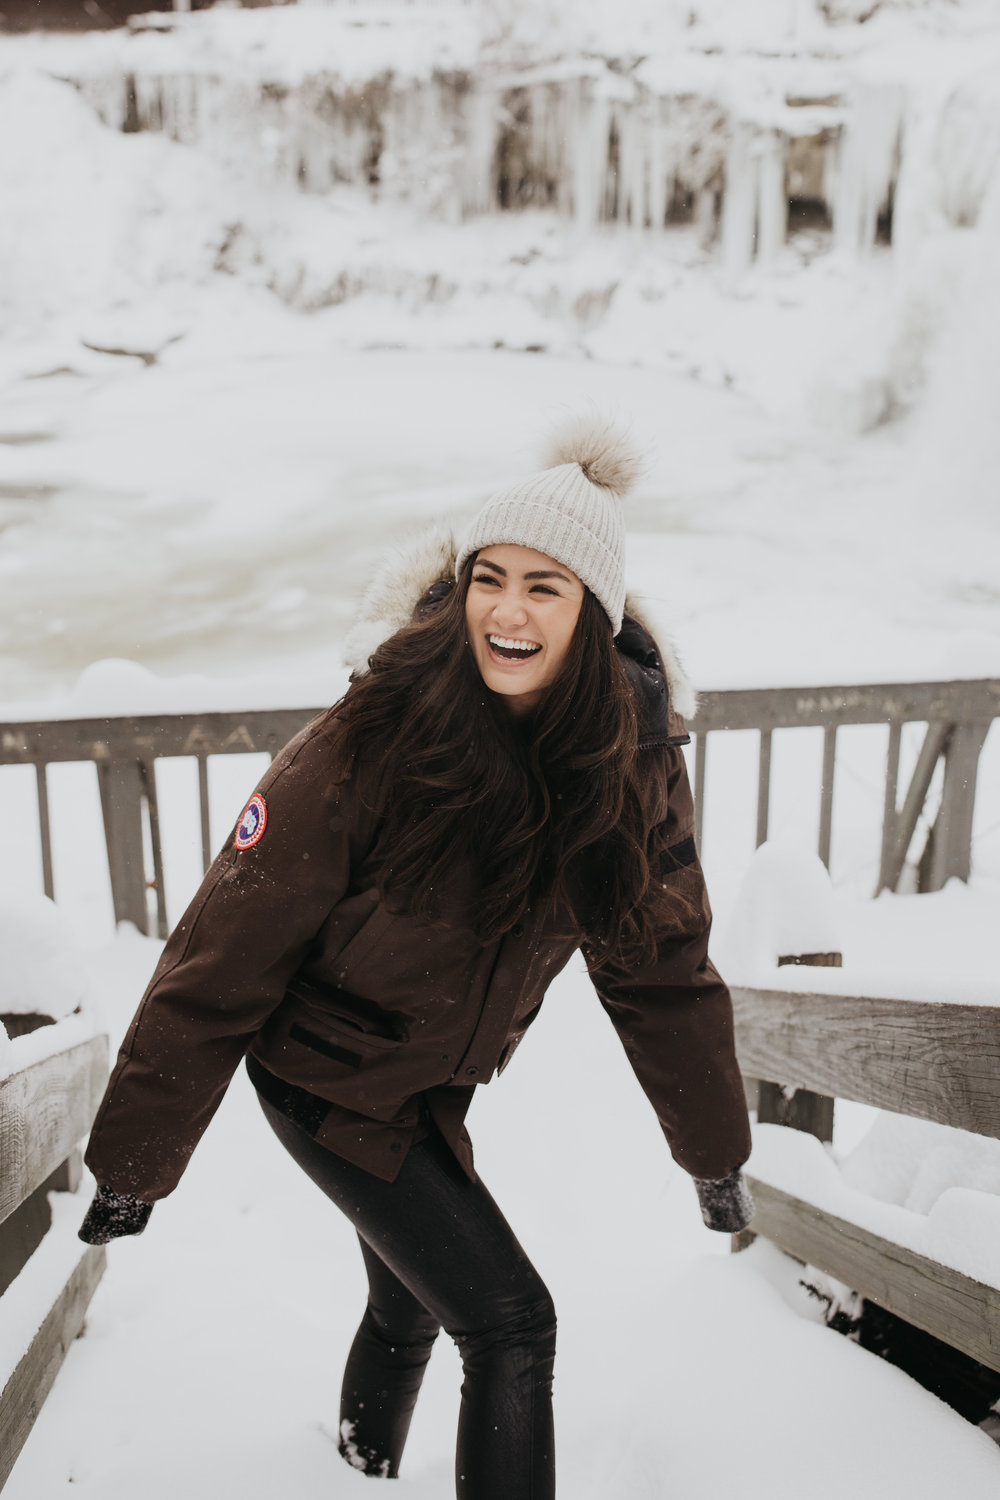 Caila Quinn The Bachelor Brown Canada Goose Coat Chagrin Falls Ohio